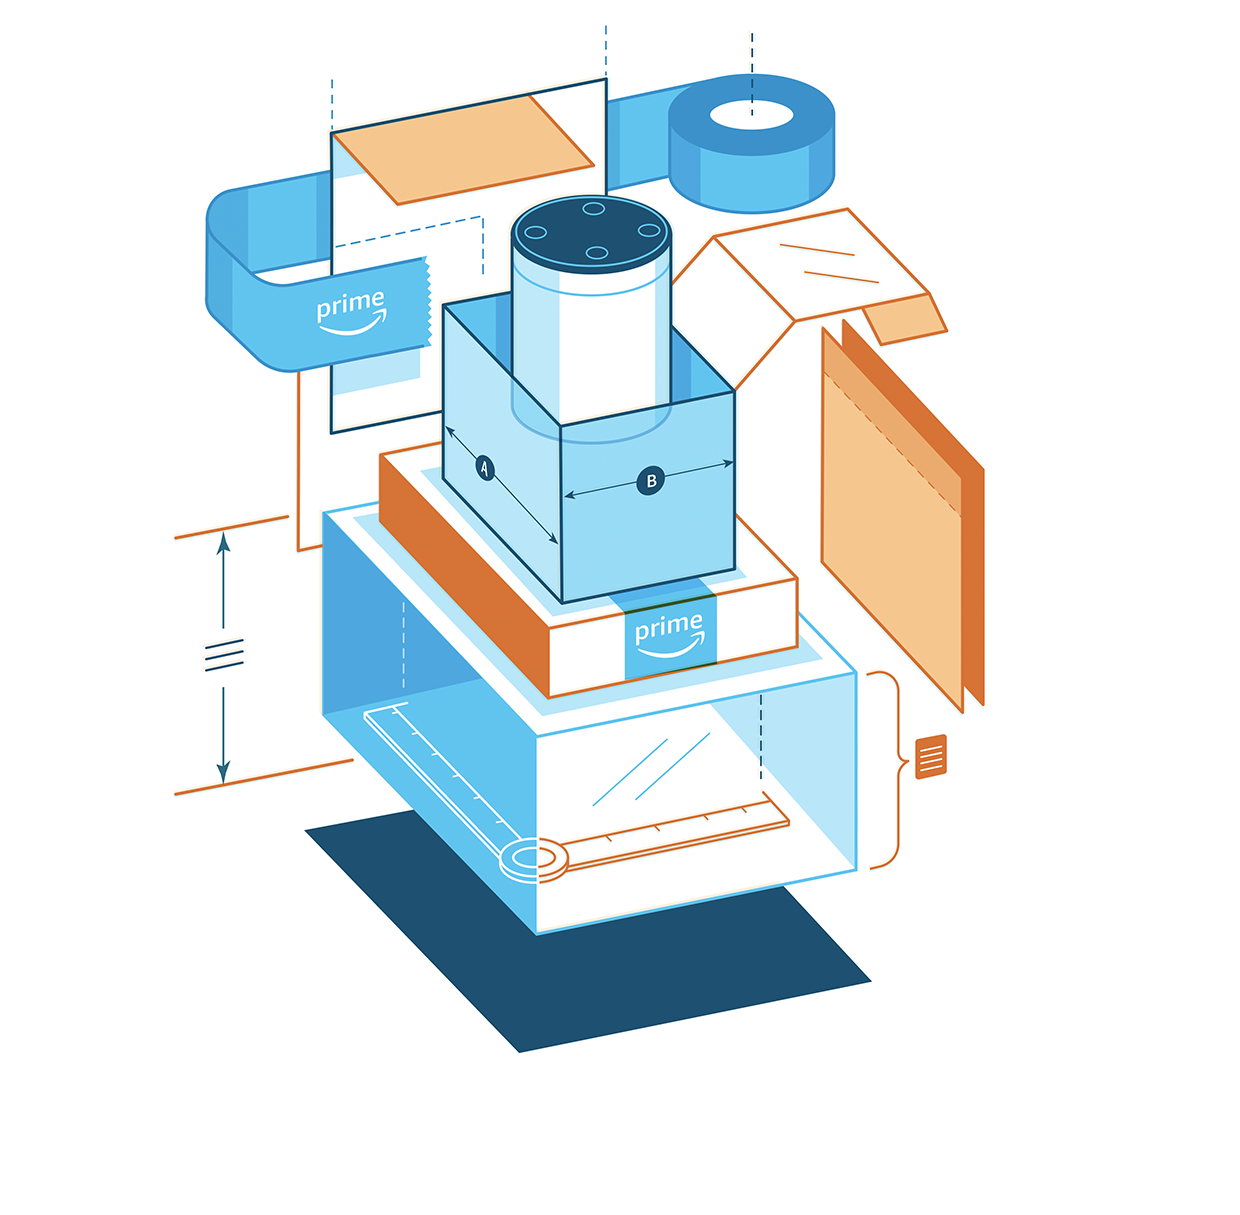 Illustration of all the components that go into an Alexa device package